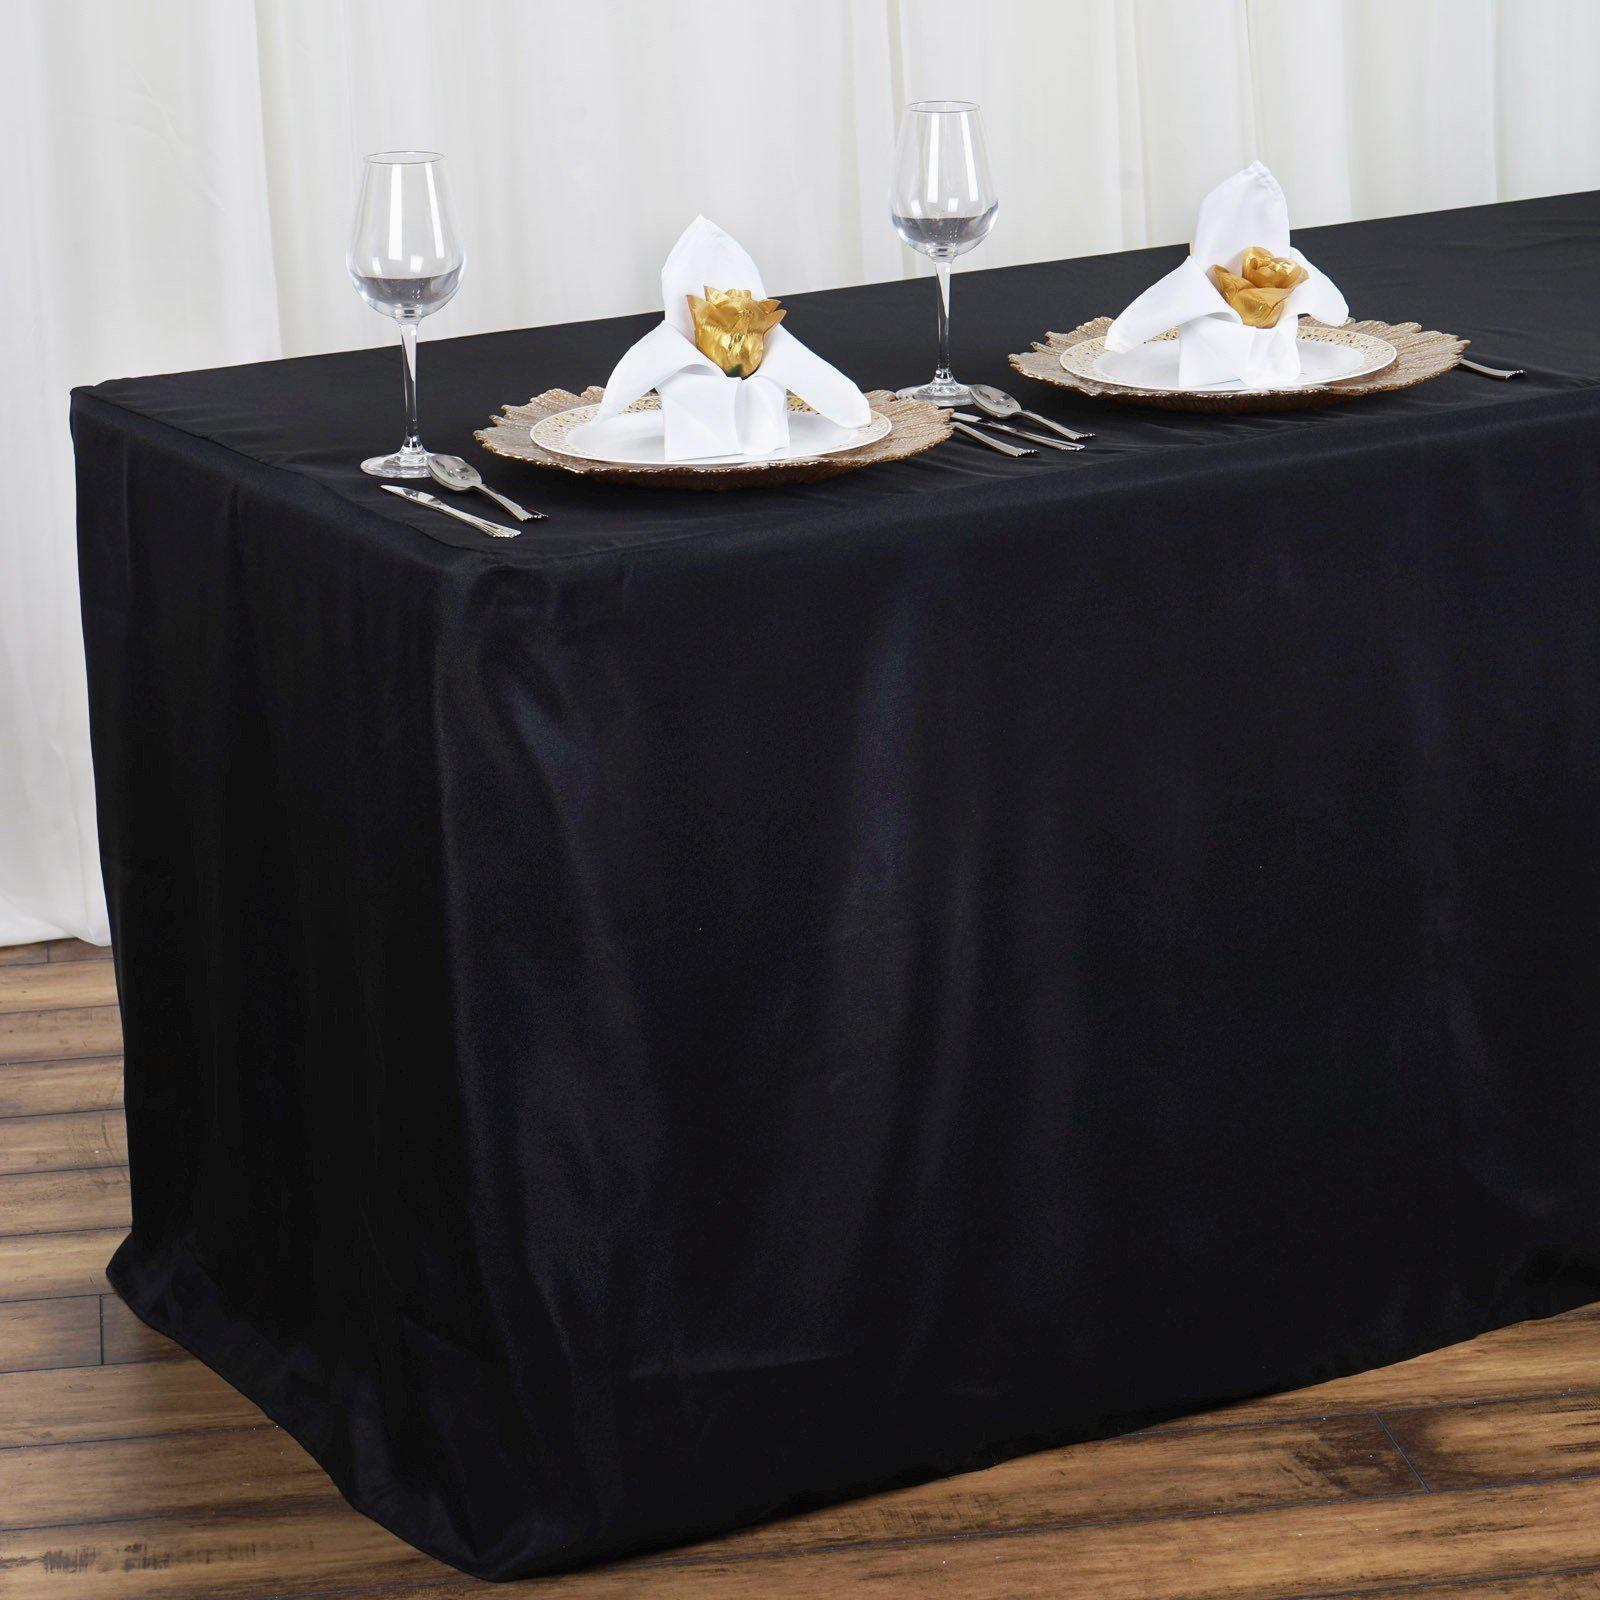 ... 4FT Fitted BLACK Wholesale Polyester Table Cover Wedding Banquet Event  Tablecloth ...